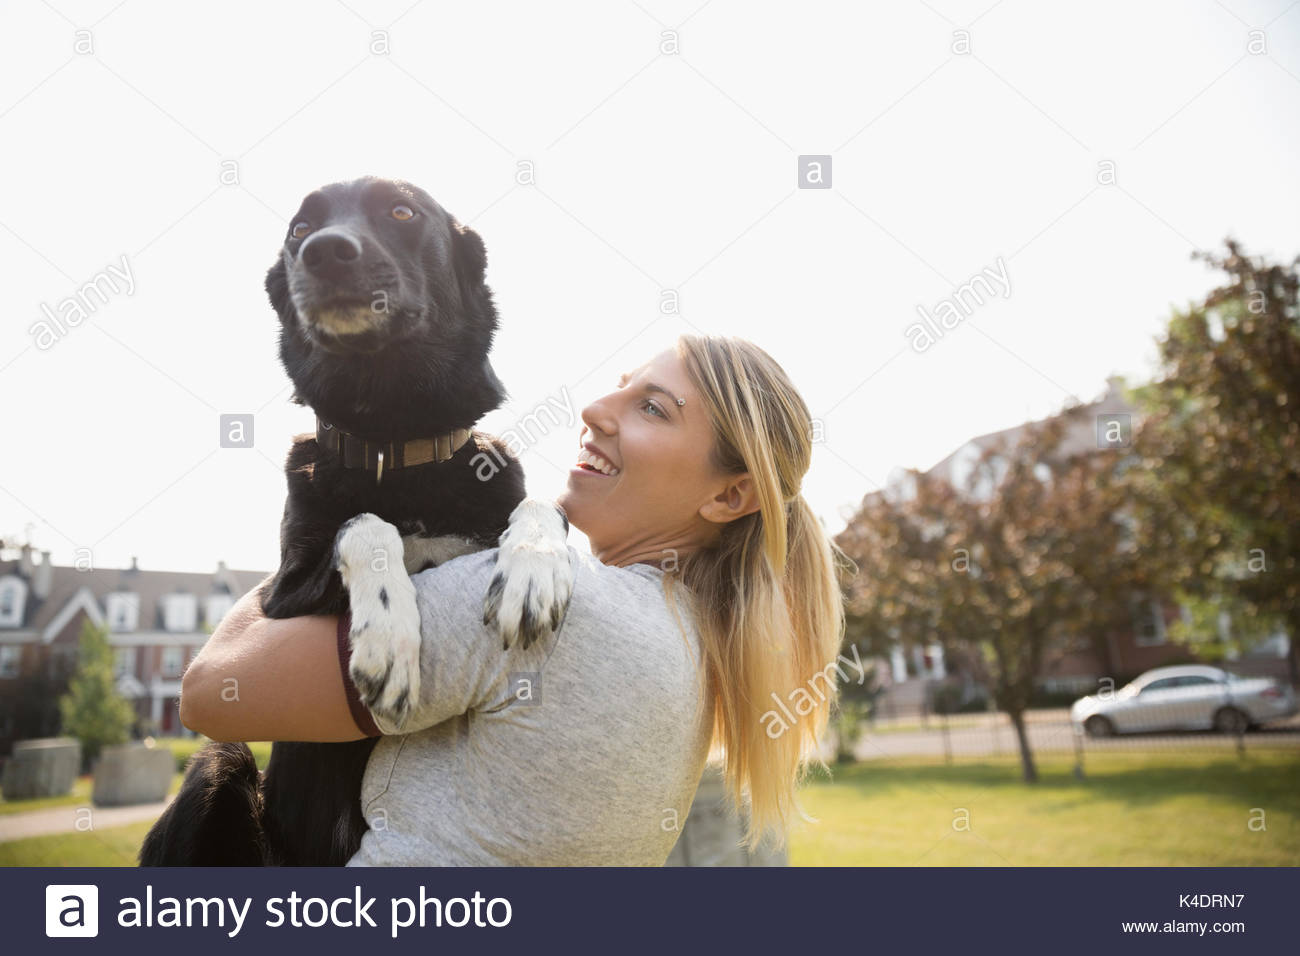 Female pet owner holding dog in park - Stock Image